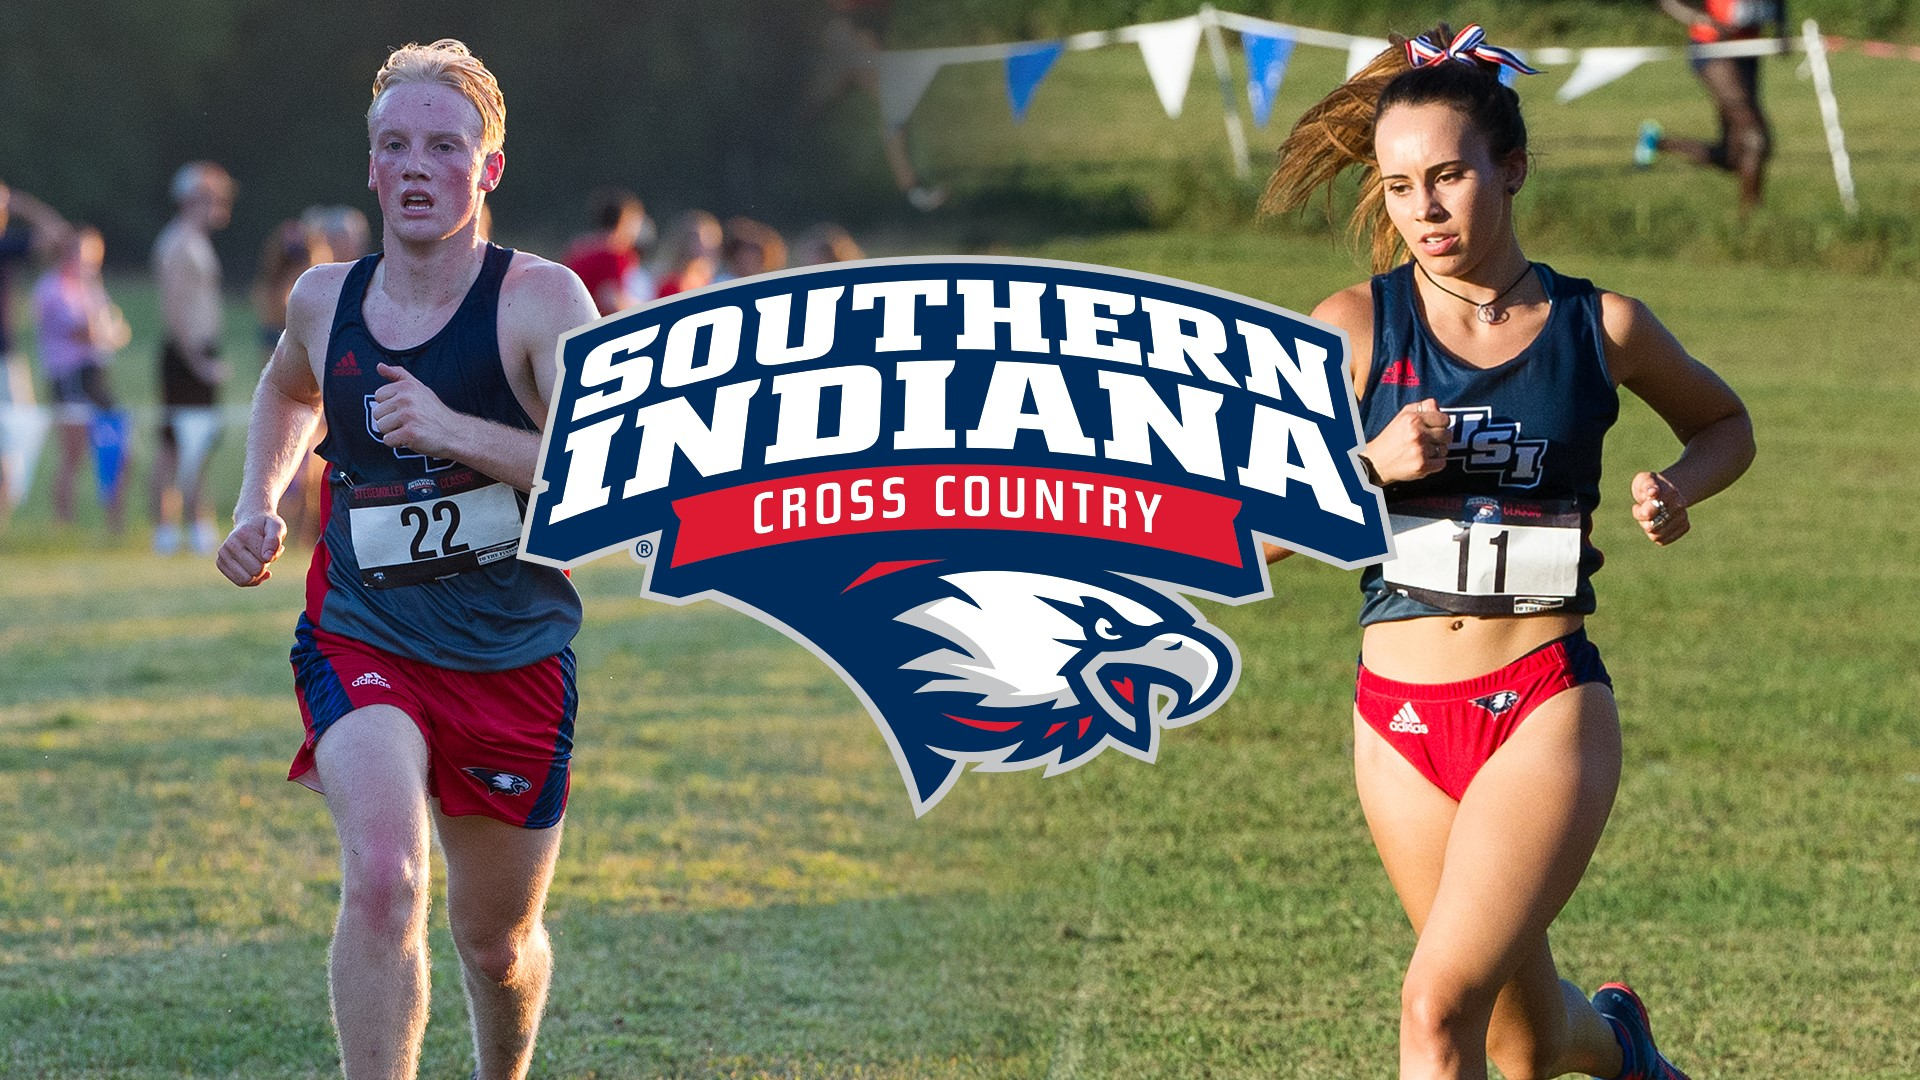 University of Southern Indiana Athletics - Official